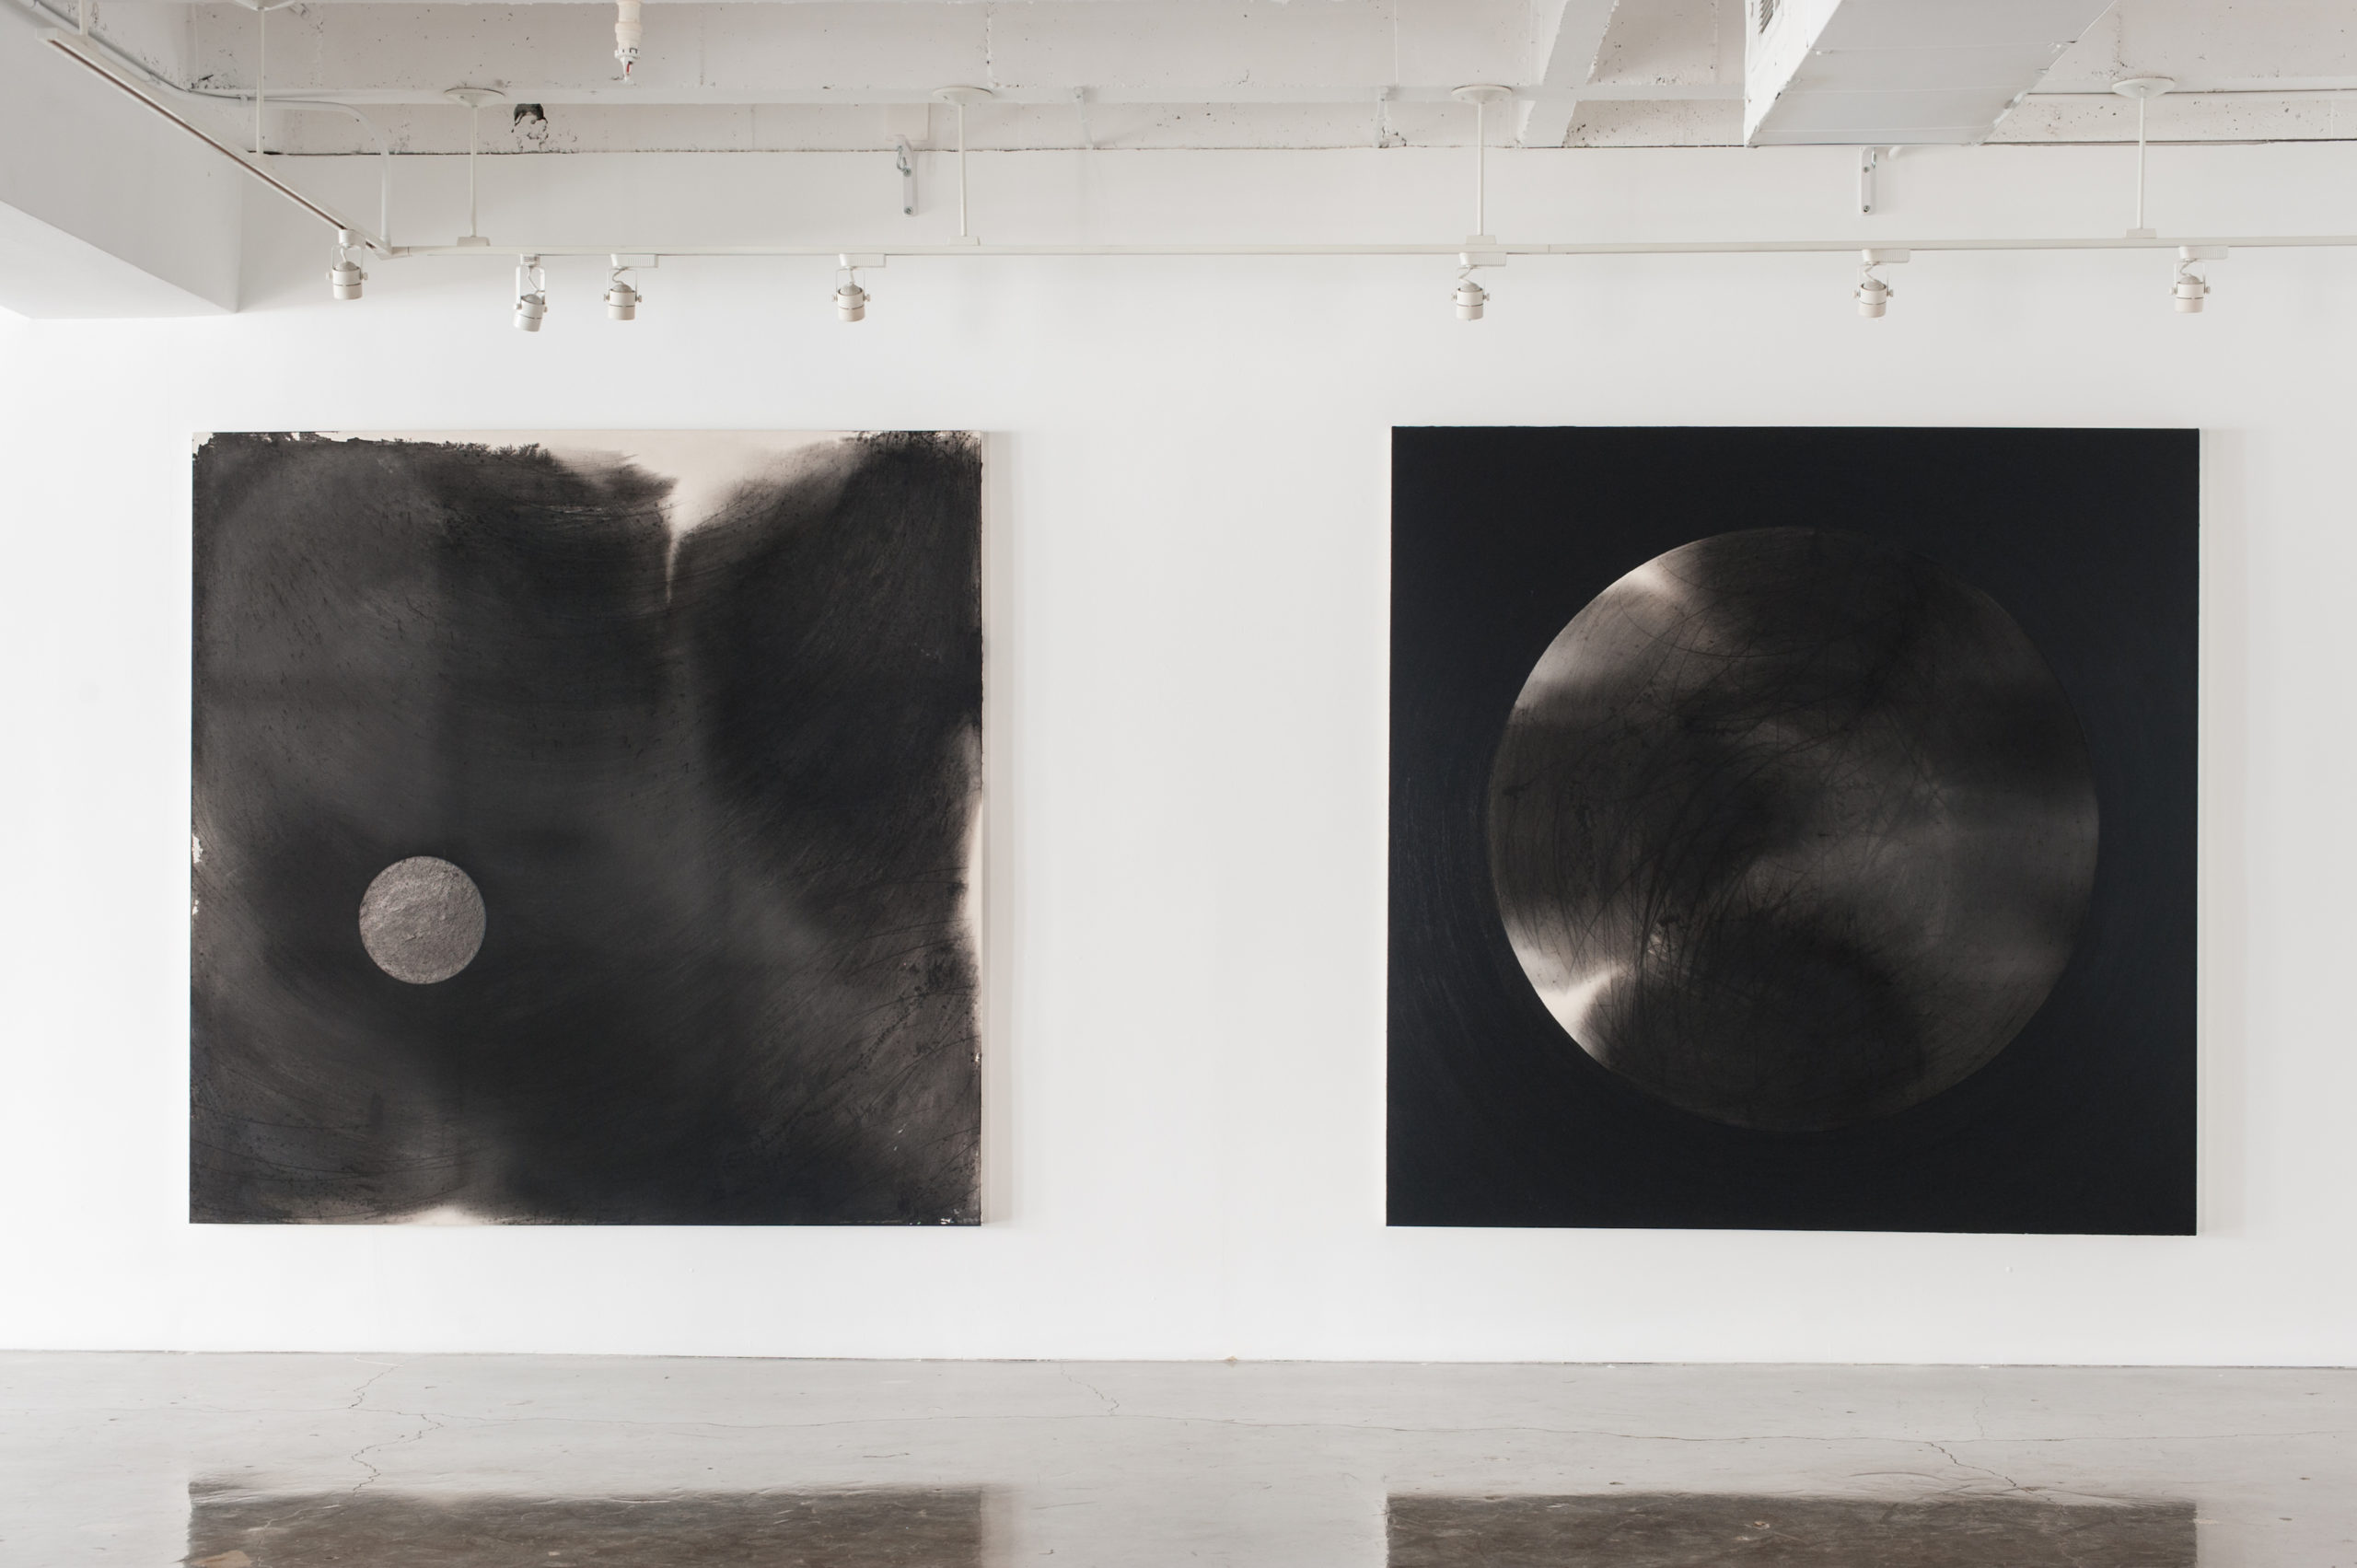 Lisa Diane Wedgeworth, Star Tracking (installation view), 2015. Courtesy of the artist. Photograph by Wanho Frank.